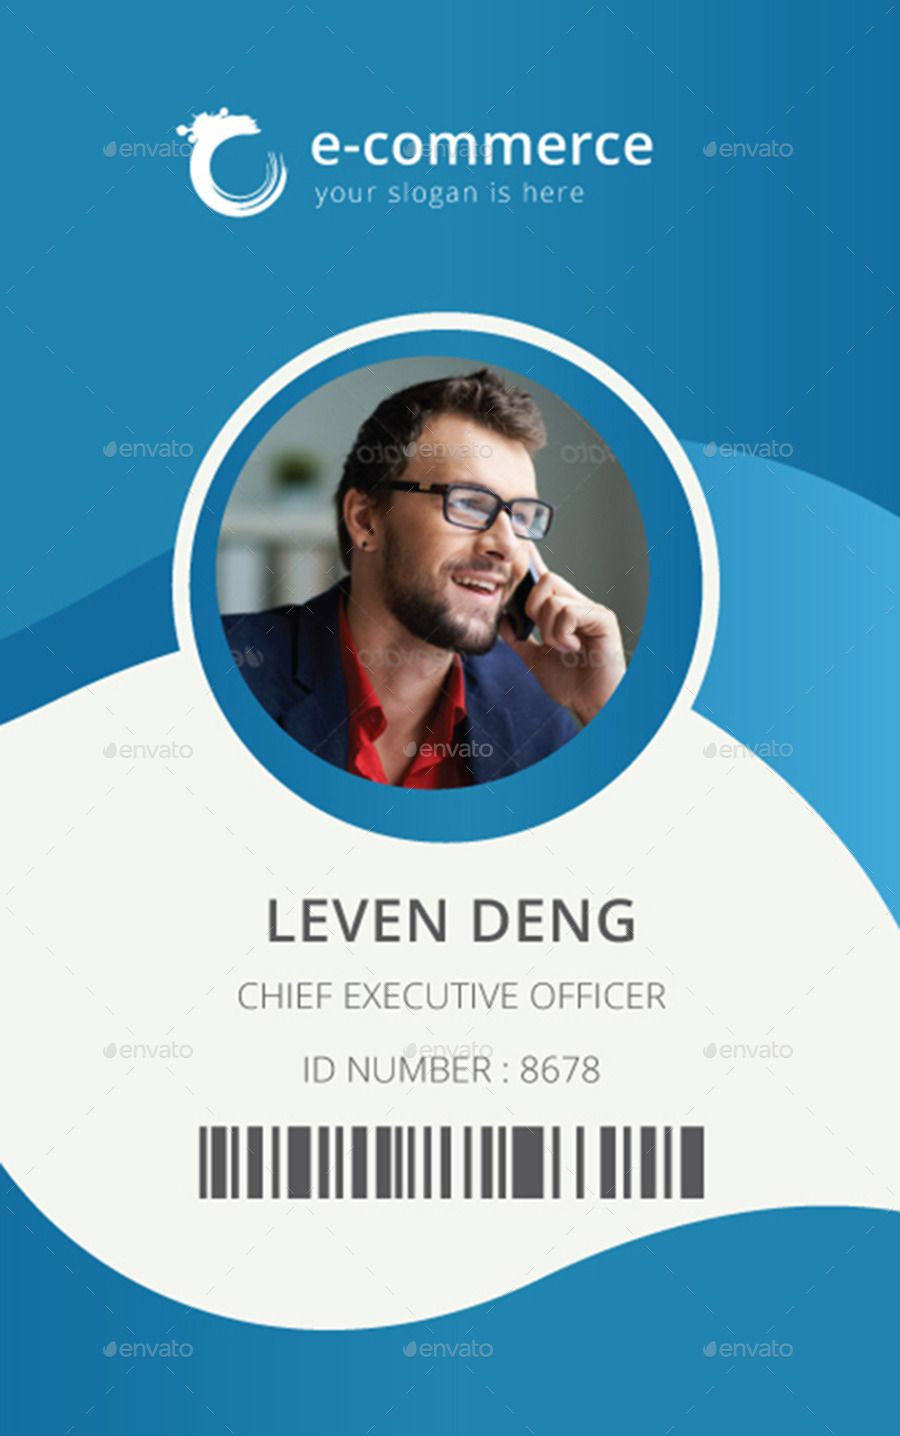 medium resolution of e commerce business office id card